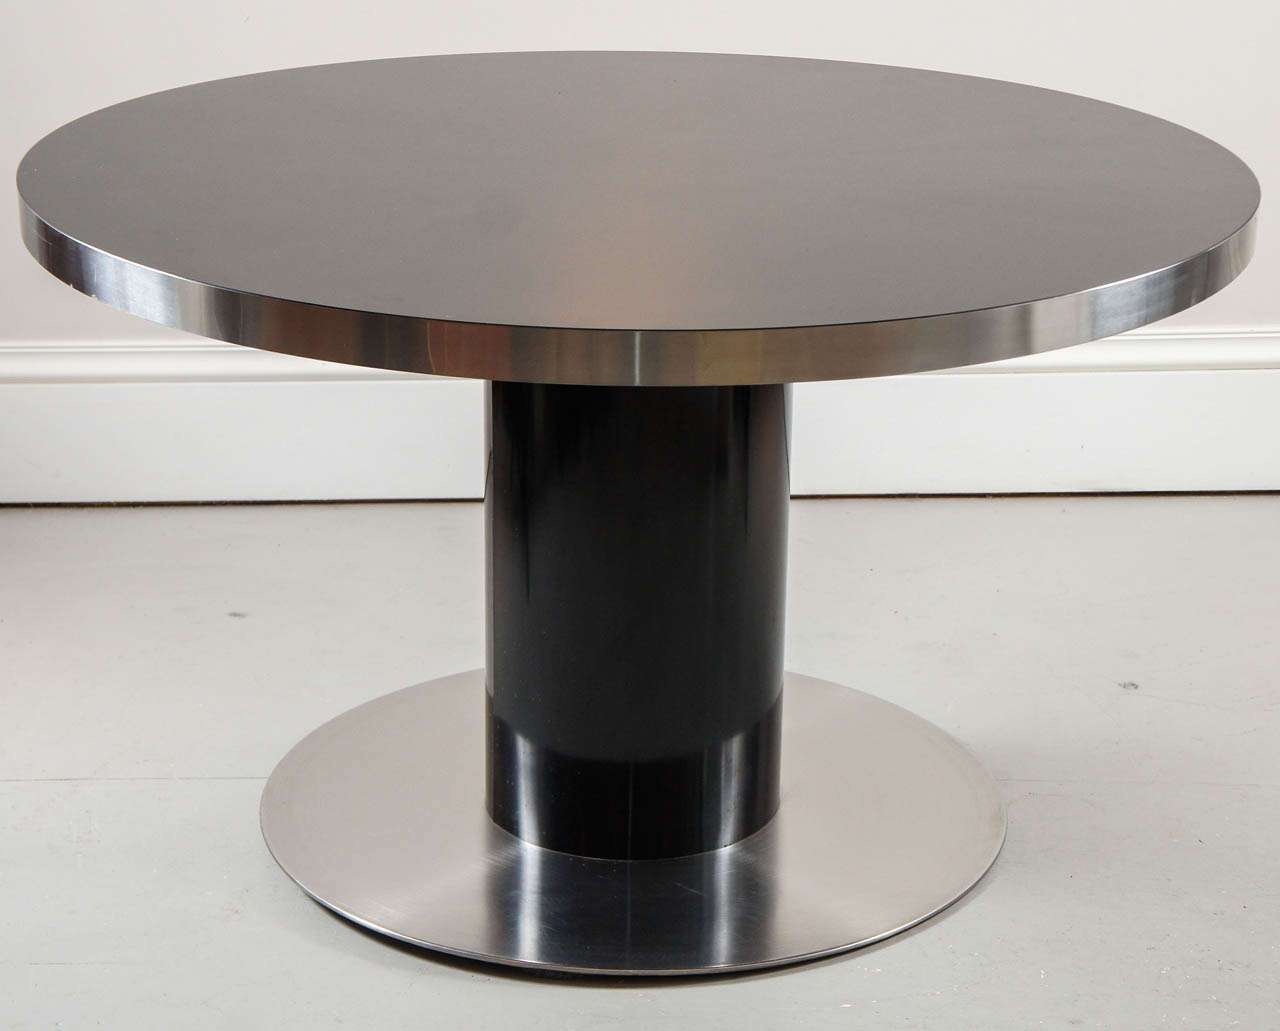 1970s Black Laminate And Brushed Steel Round Dining Table At 1stdibs